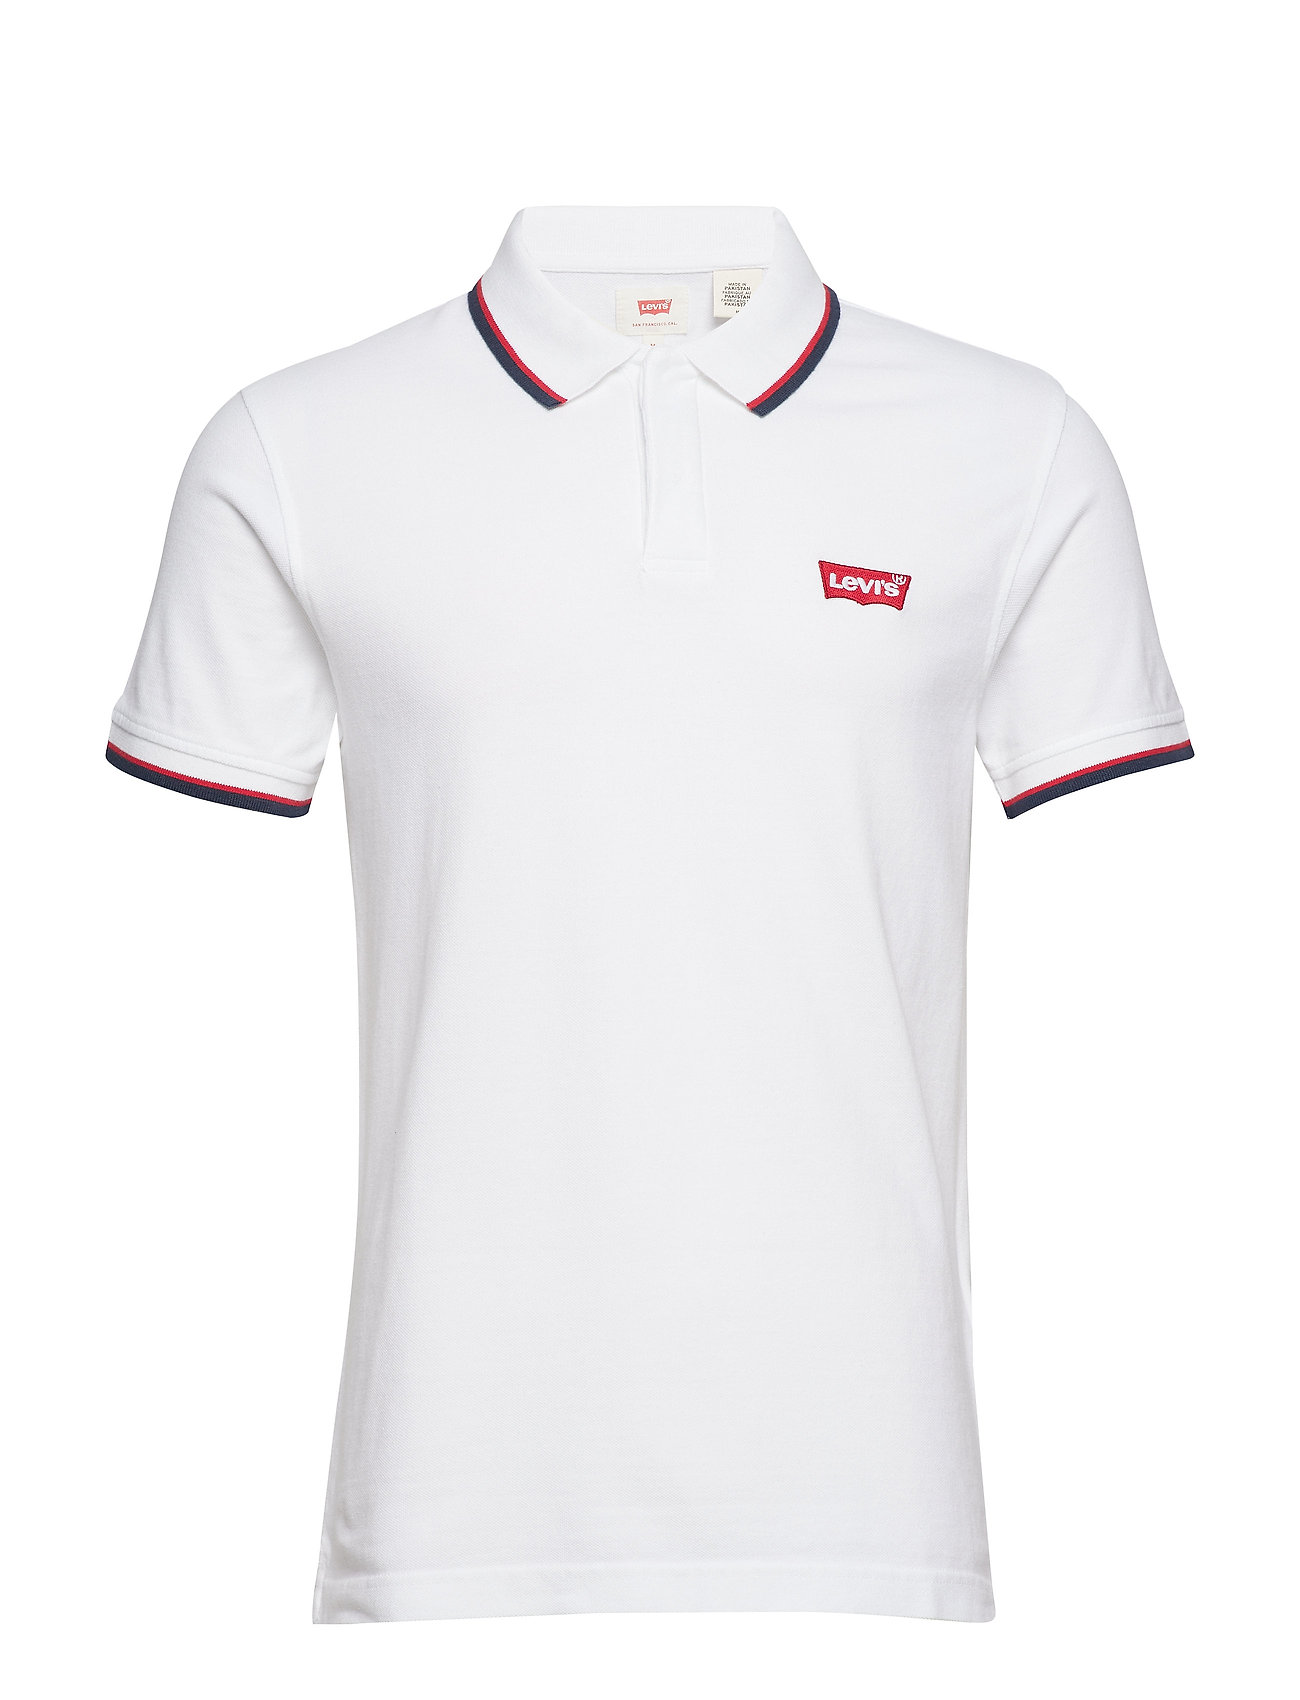 Ss Modern Hm Polo Men WhineutralsLevi´s Patch MpUSVqz